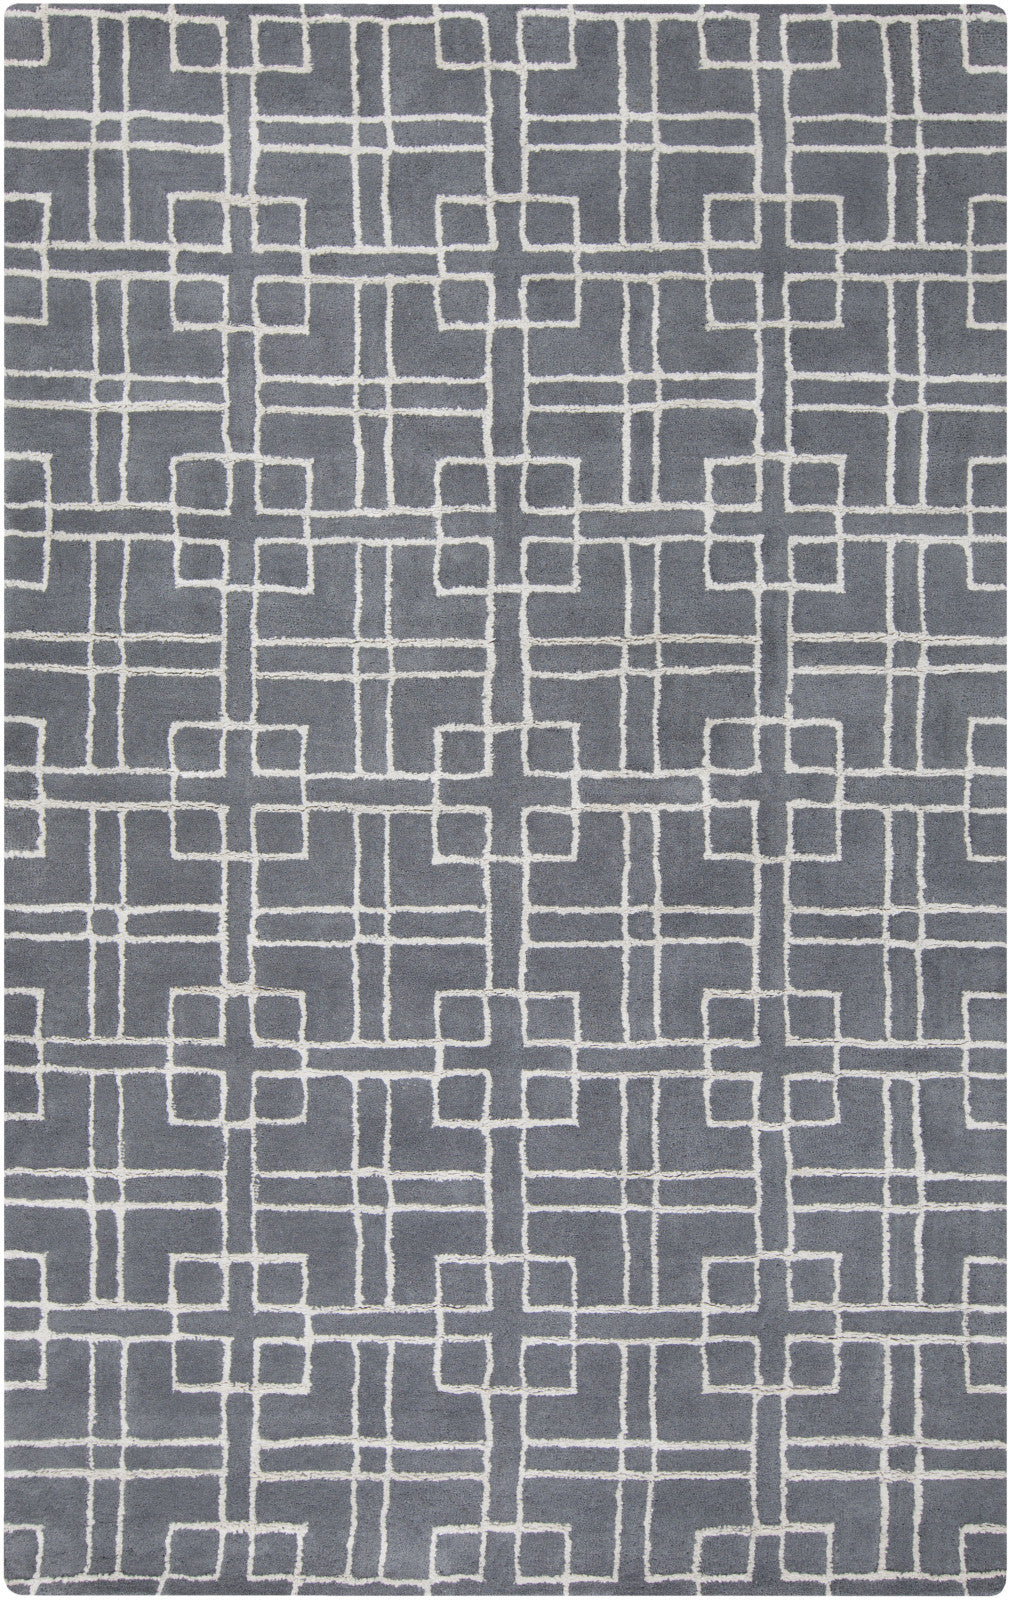 Surya Manor MNR-1013 Area Rug by GlucksteinHome